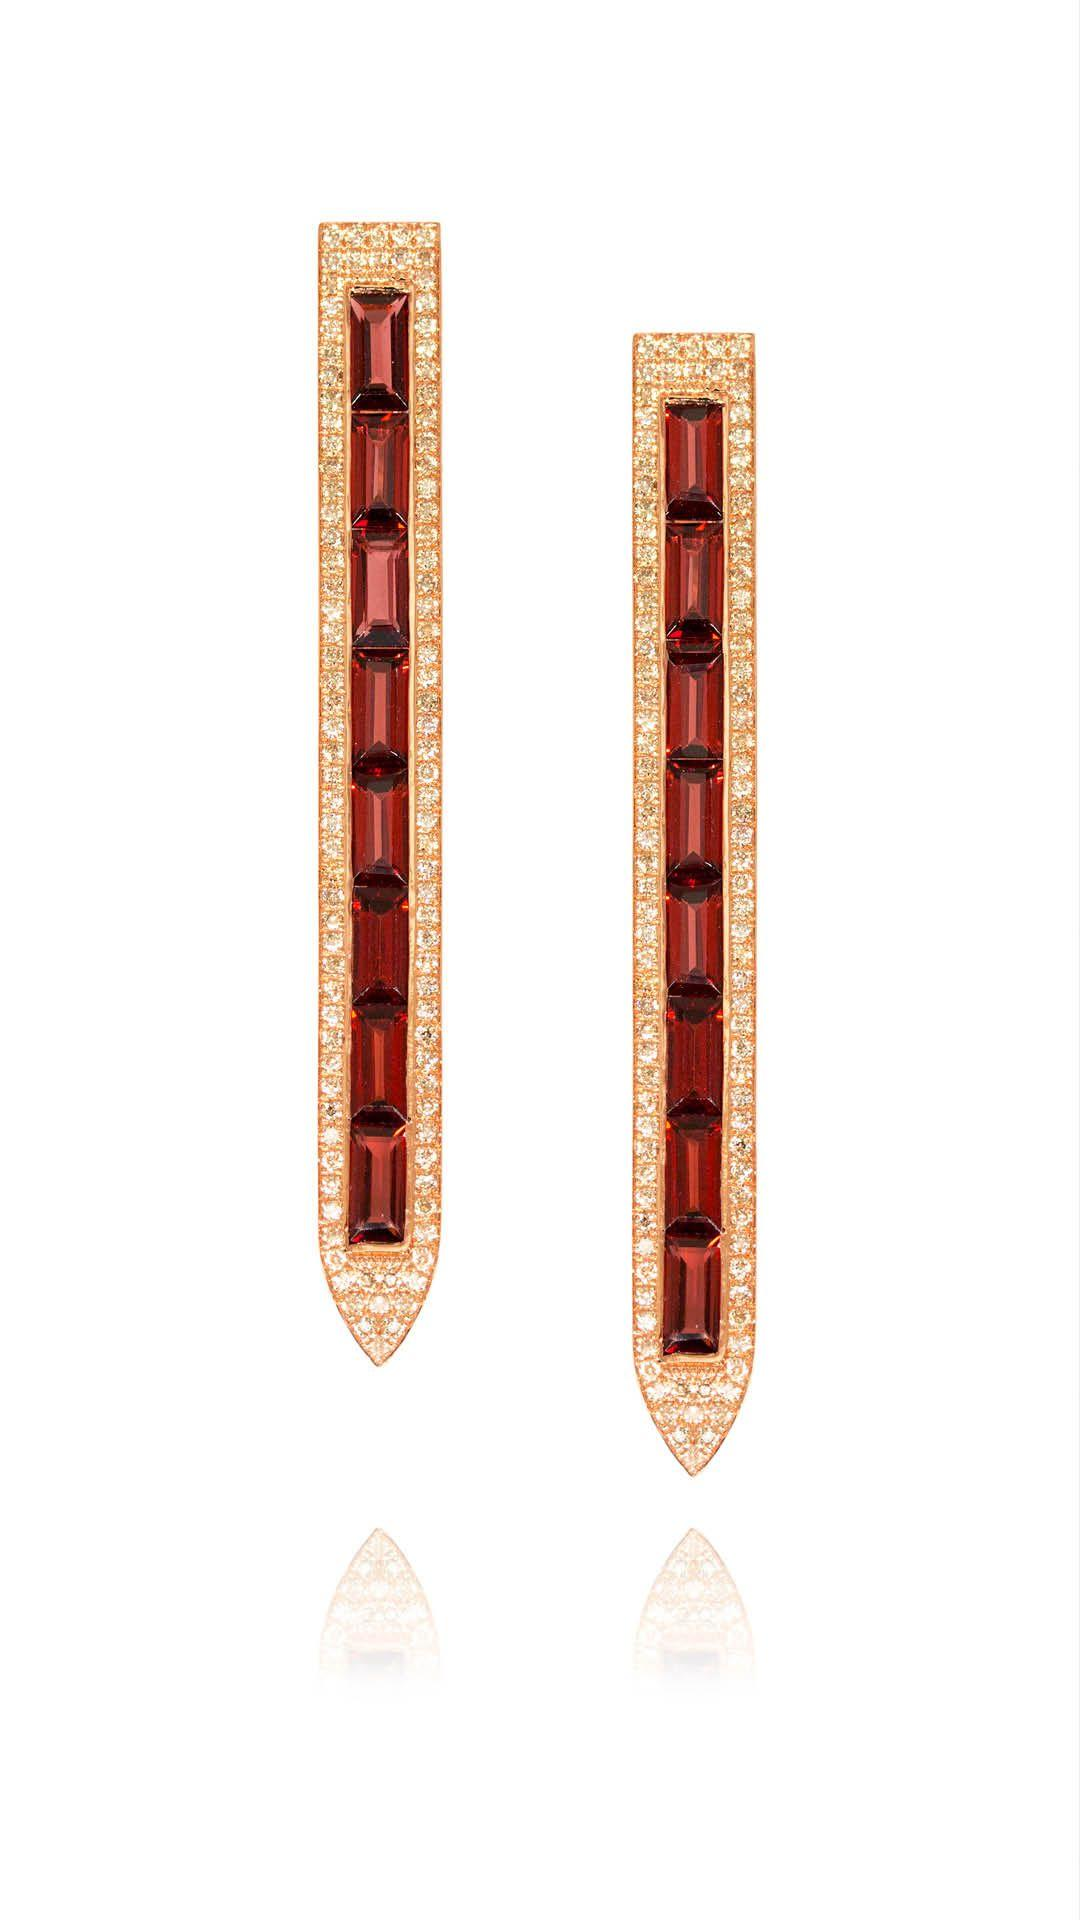 Ralph Masri Sacred Windows Earrings